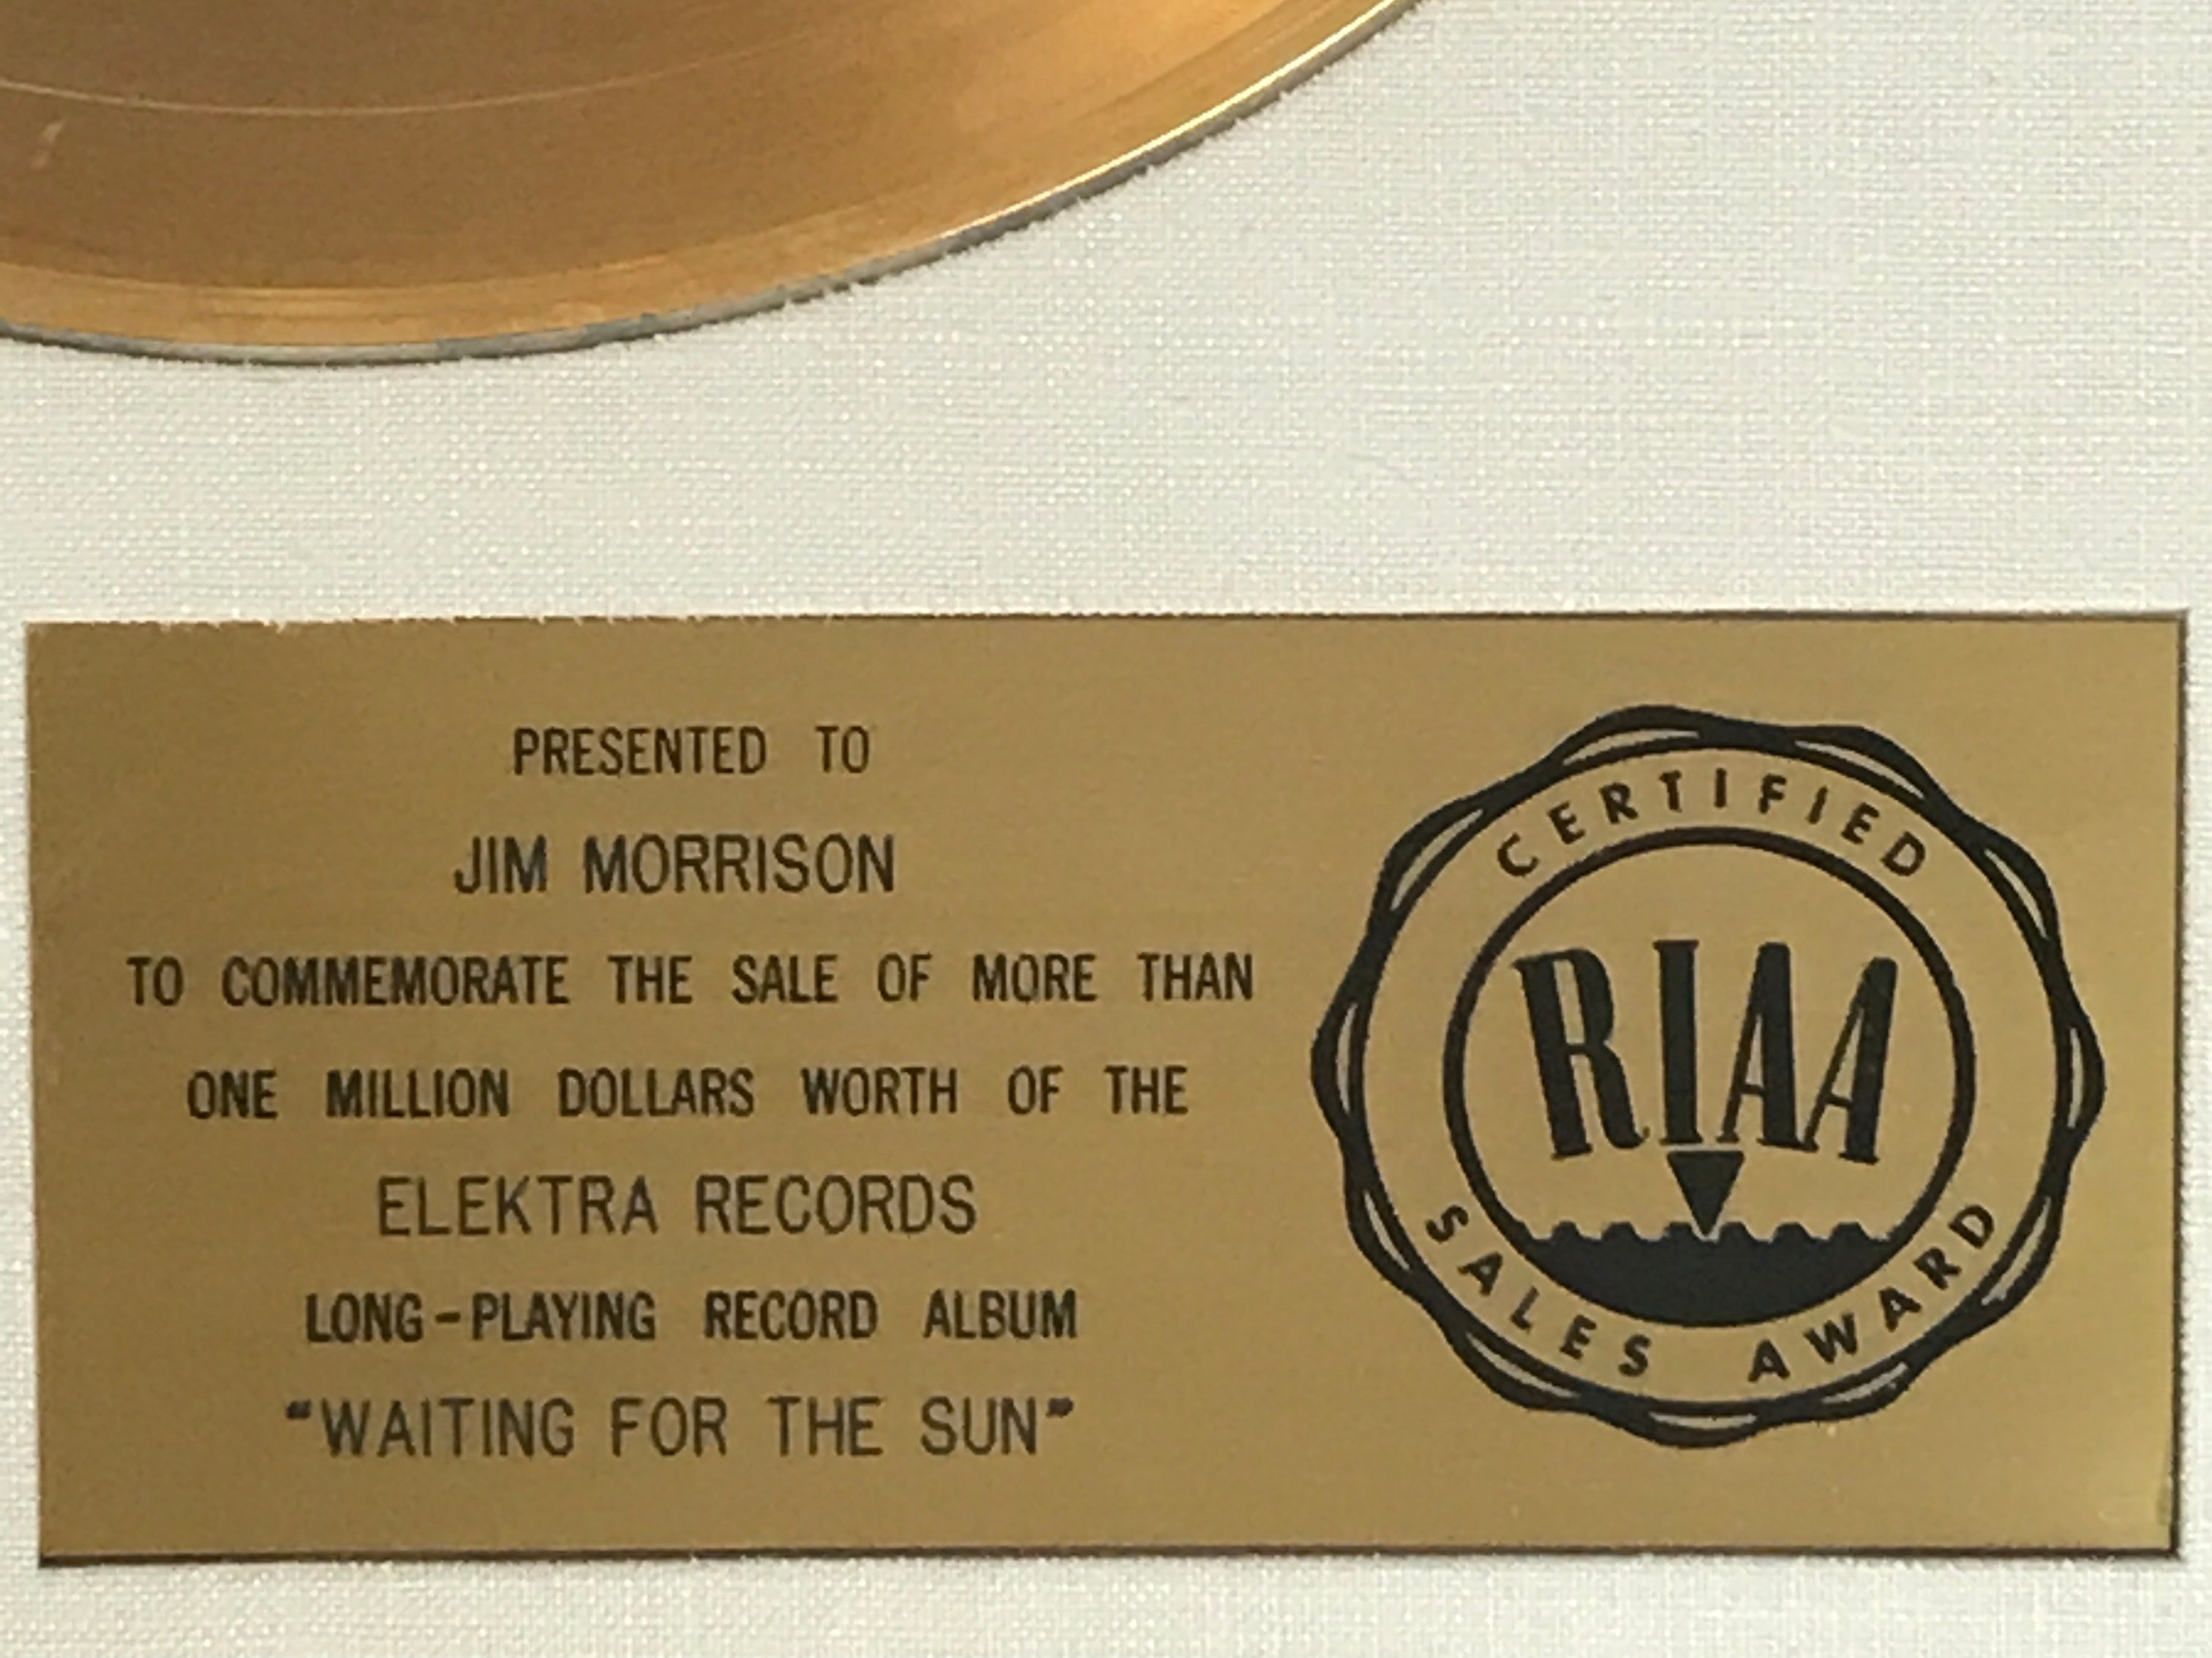 The Doors Waiting For The Sun RIAA Gold award to Jim Morrison